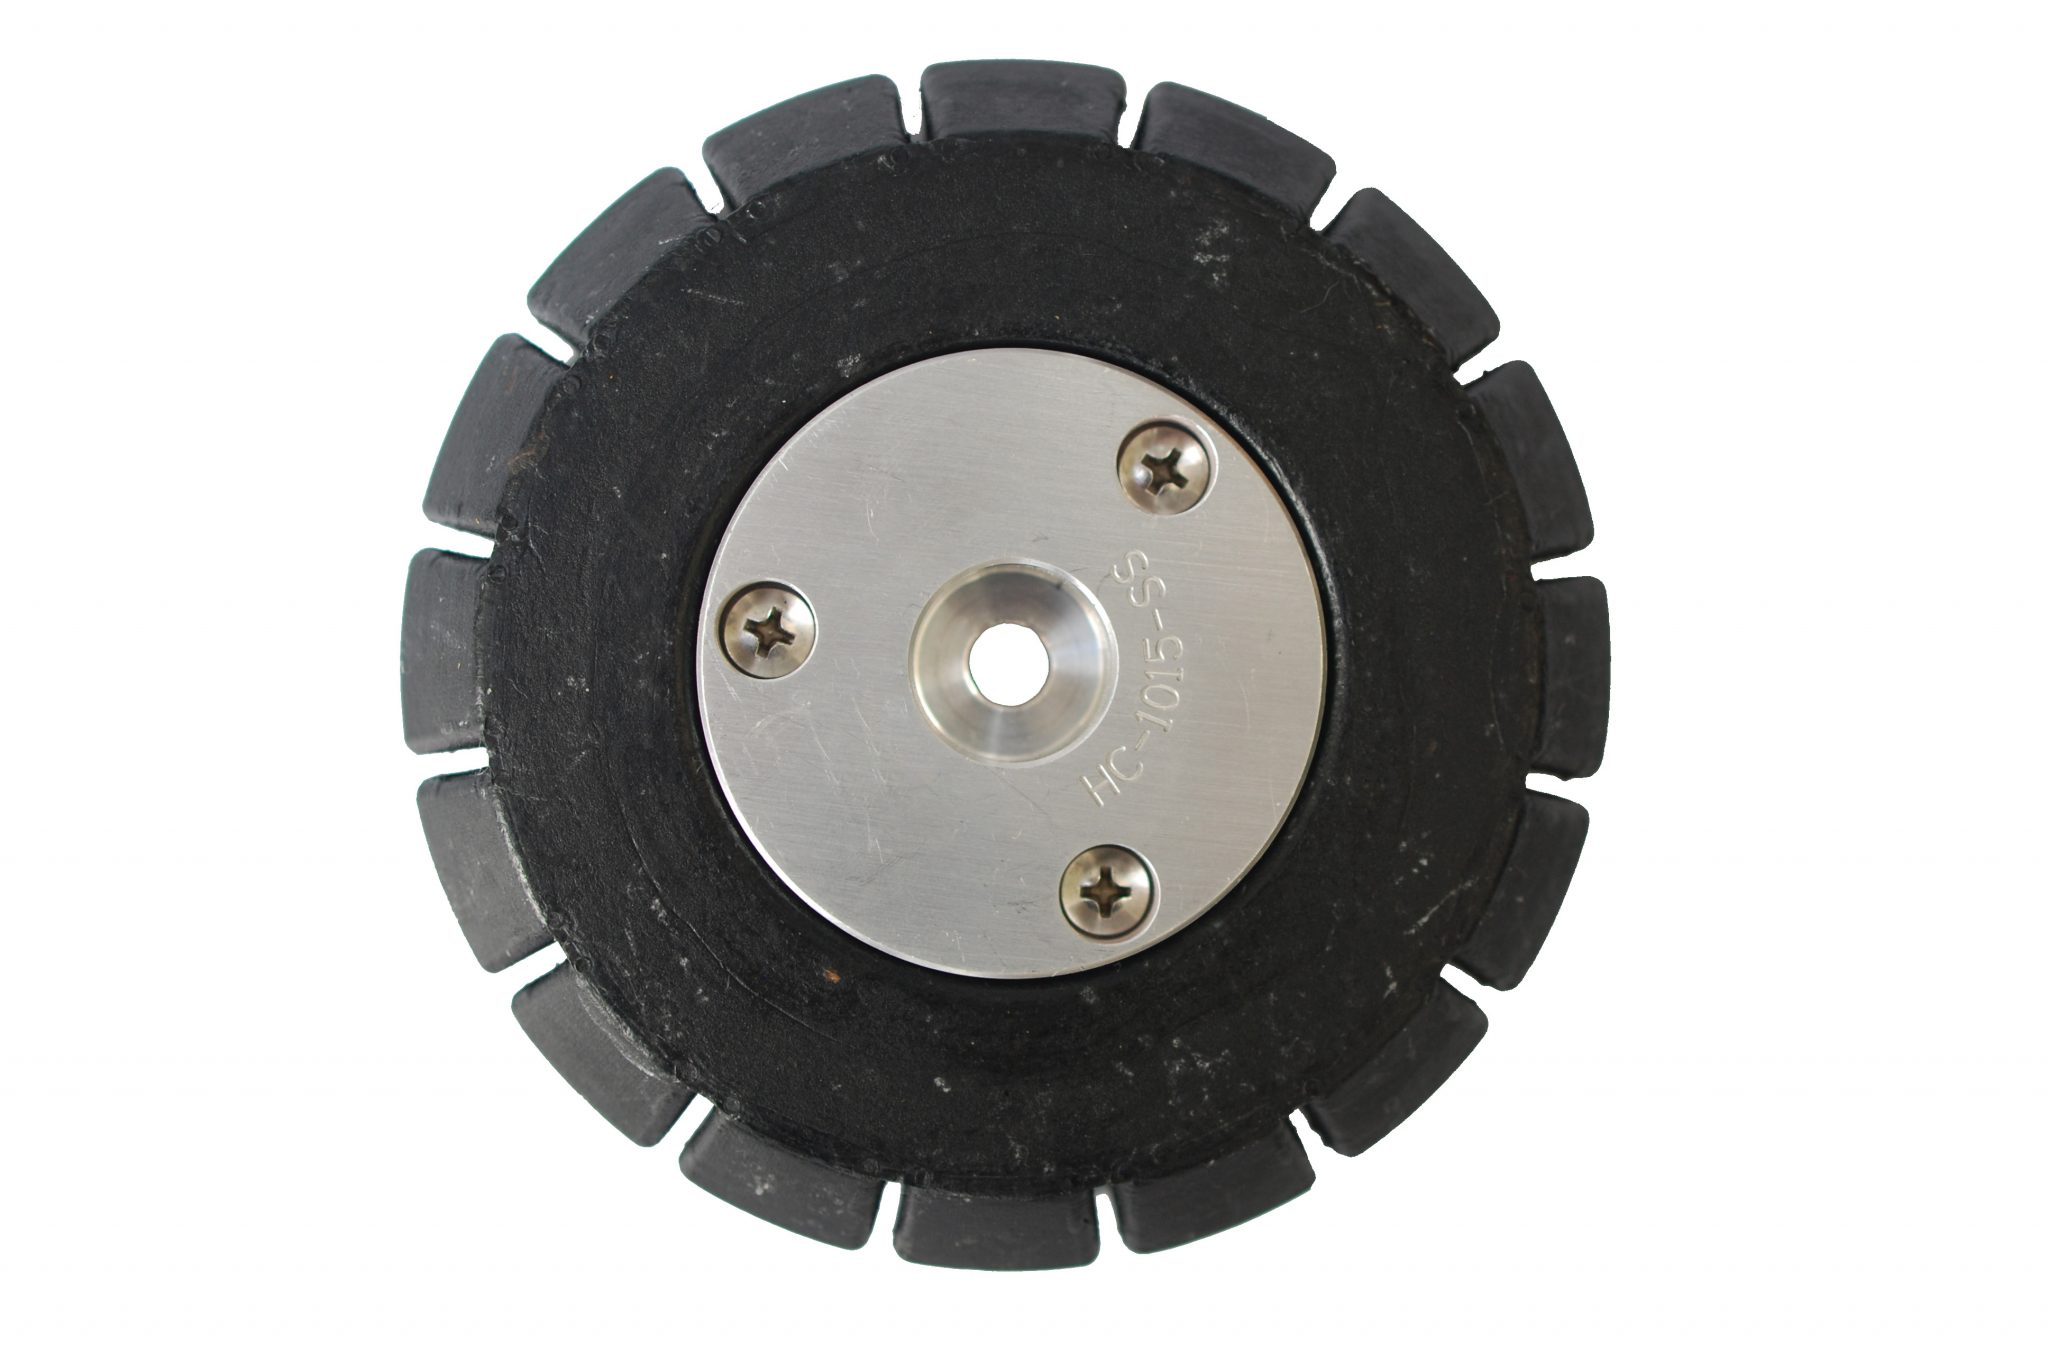 sewer equipment wheels buy online parts